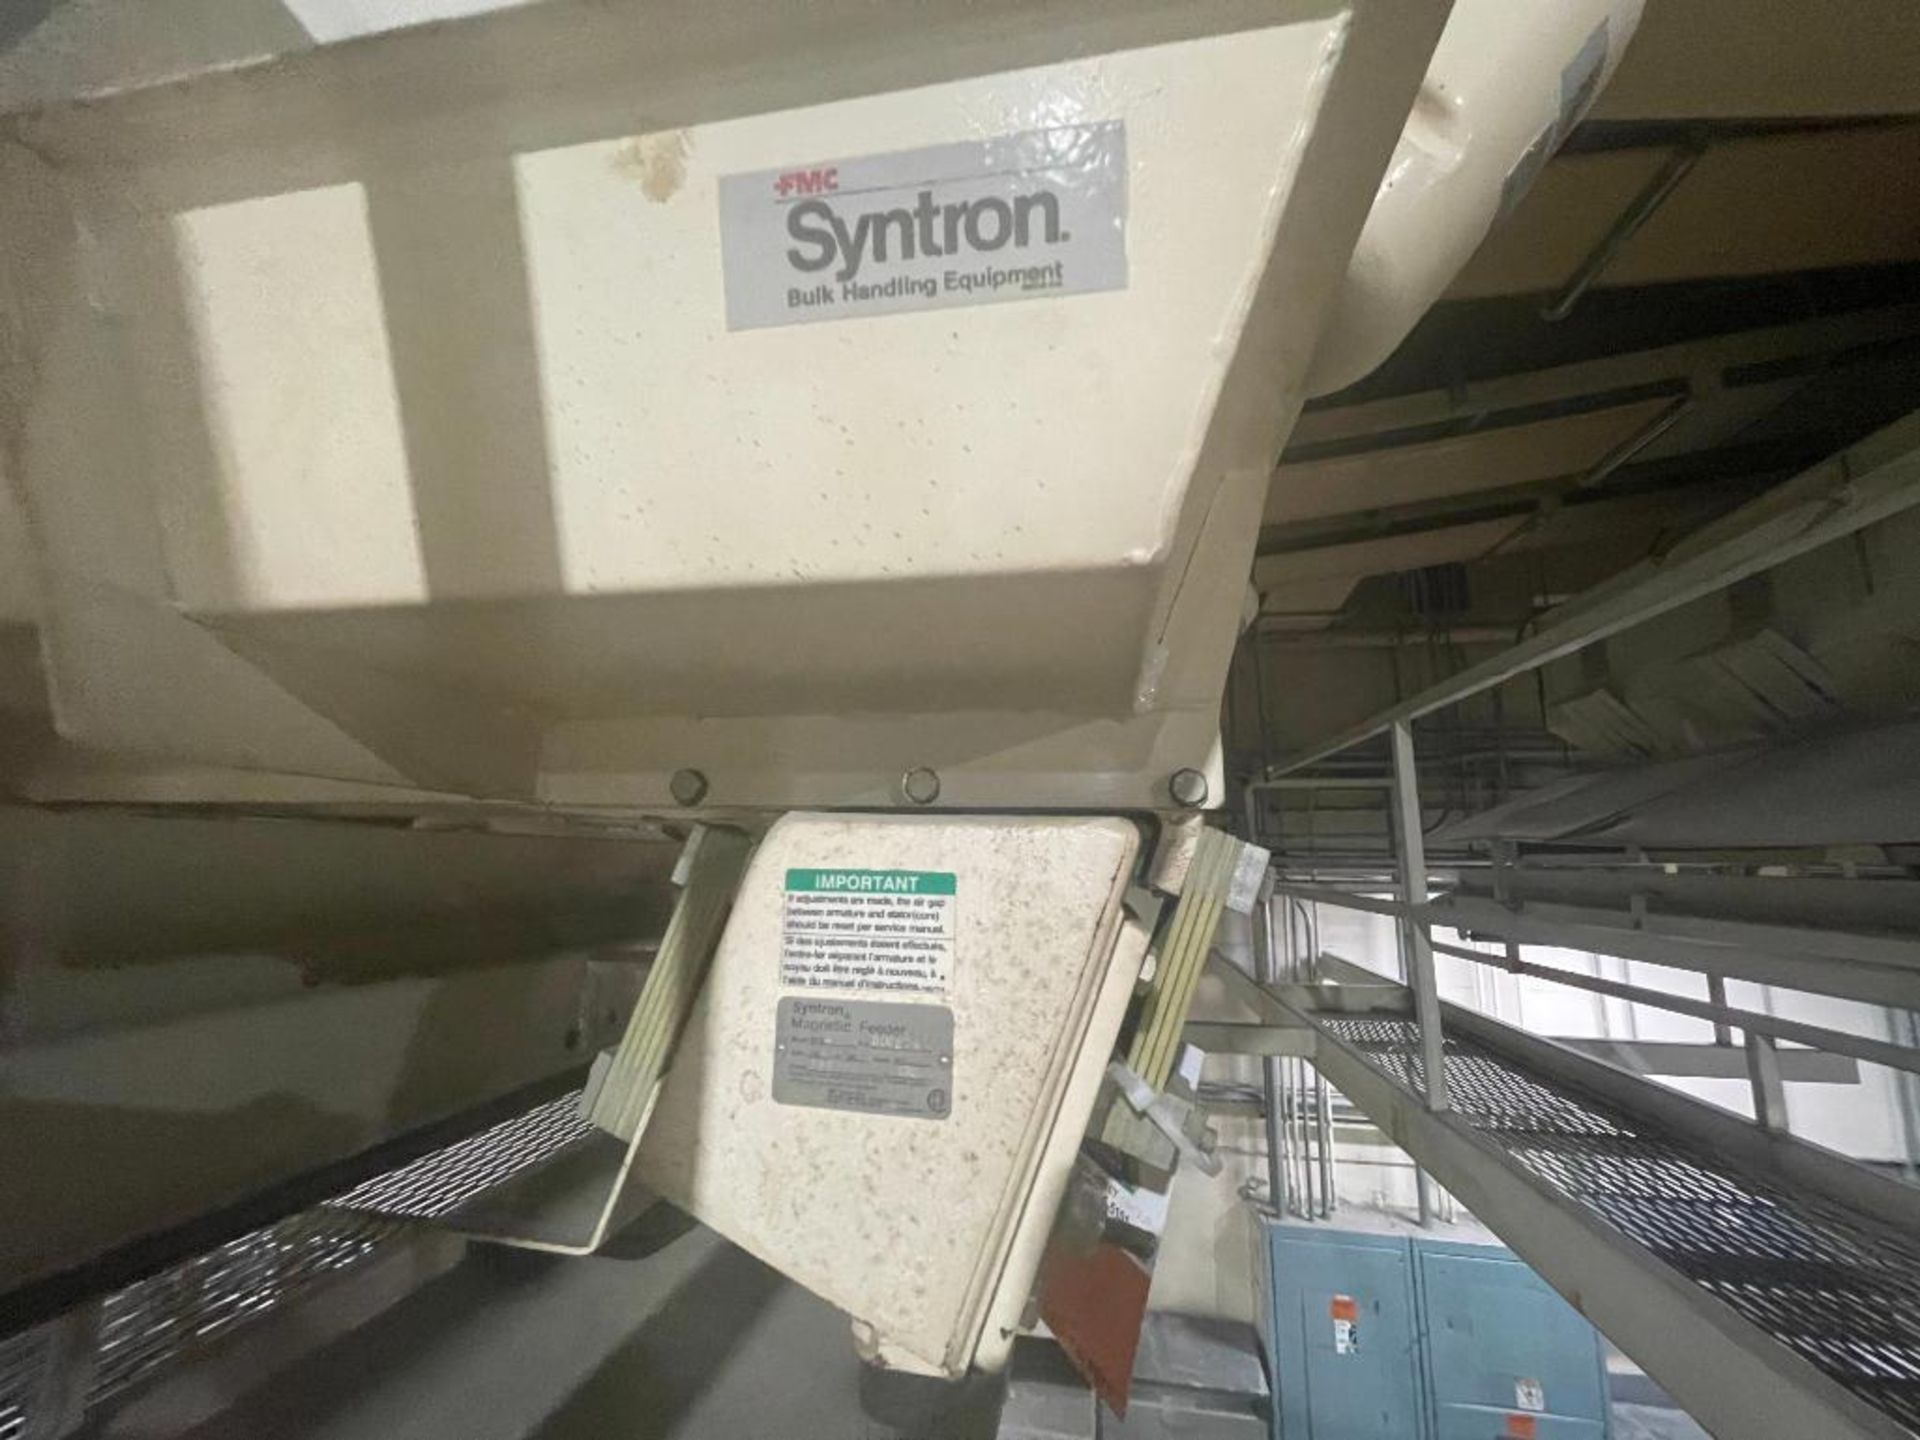 Aseeco 5-bin blending system with 5 Syntron vibratory feeders on bottom - Image 9 of 18